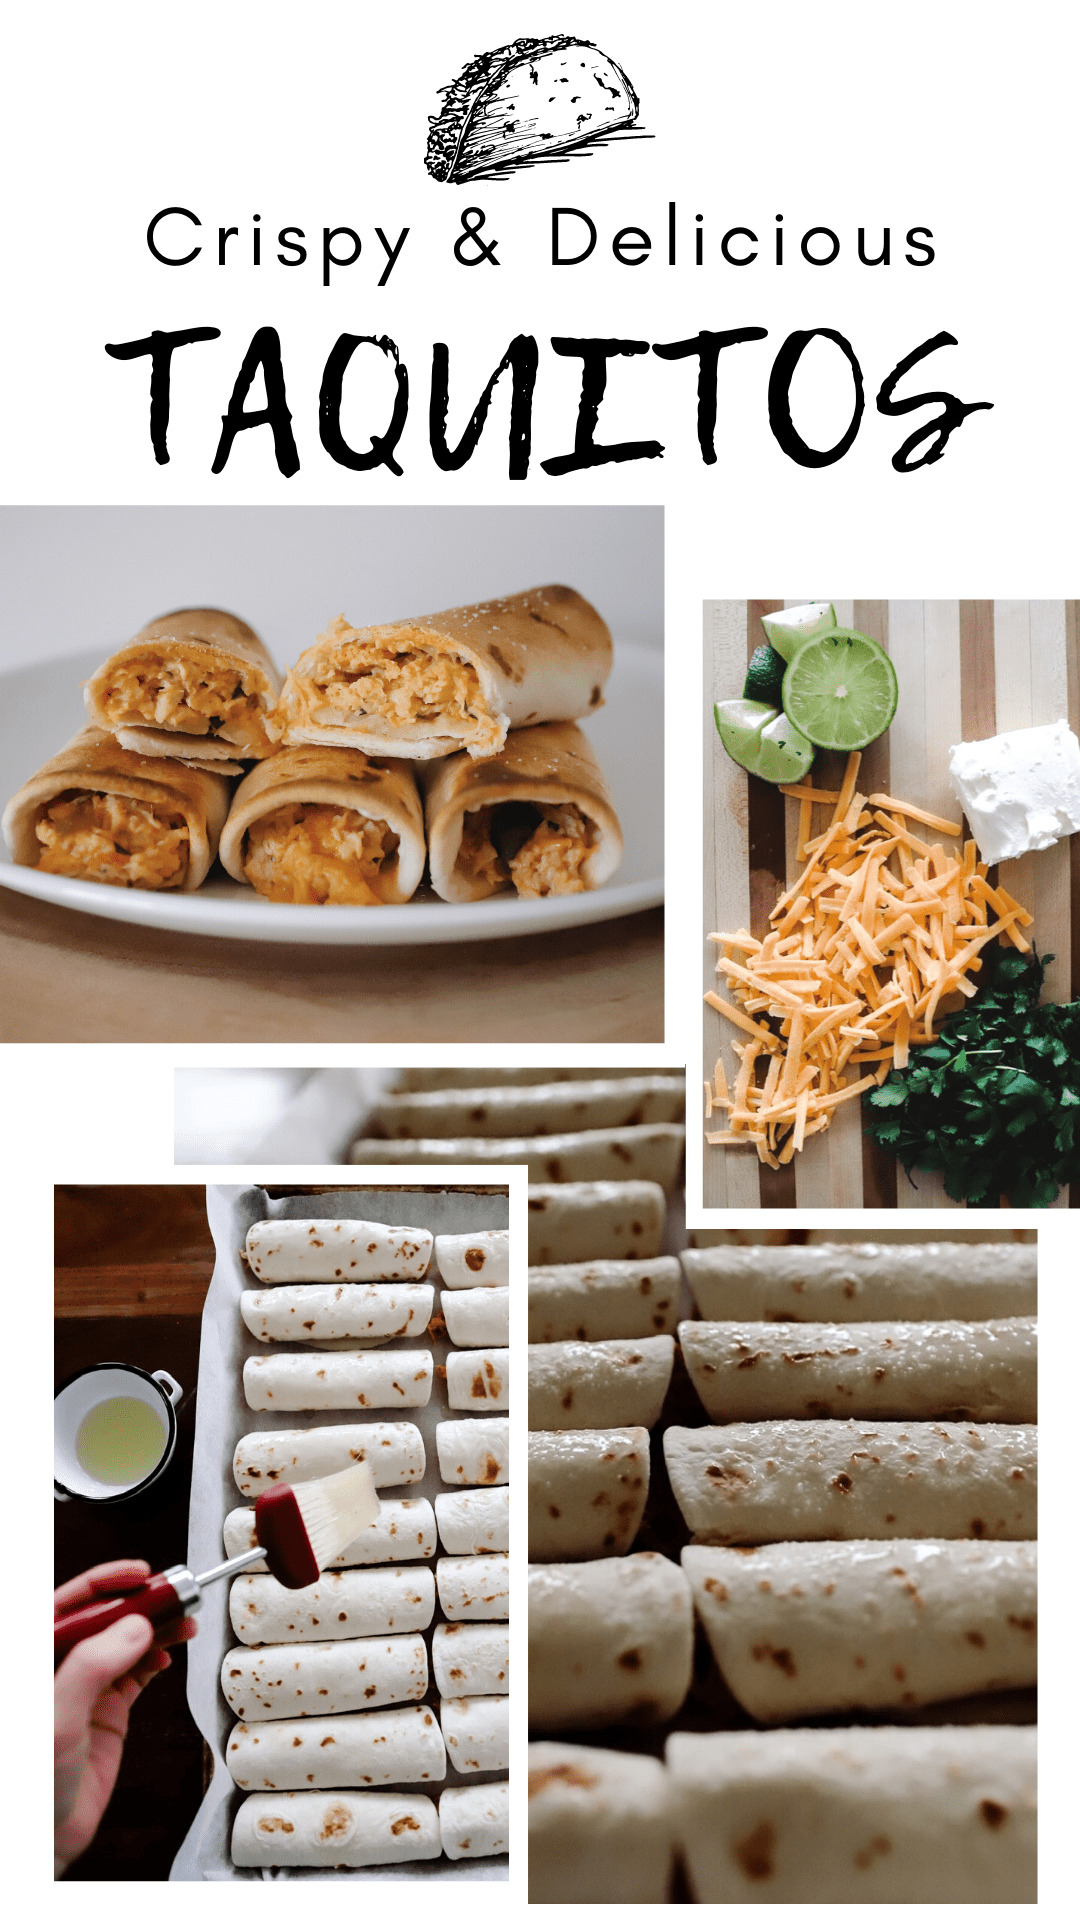 pictures of baked chicken taquitos on a kitchen counter